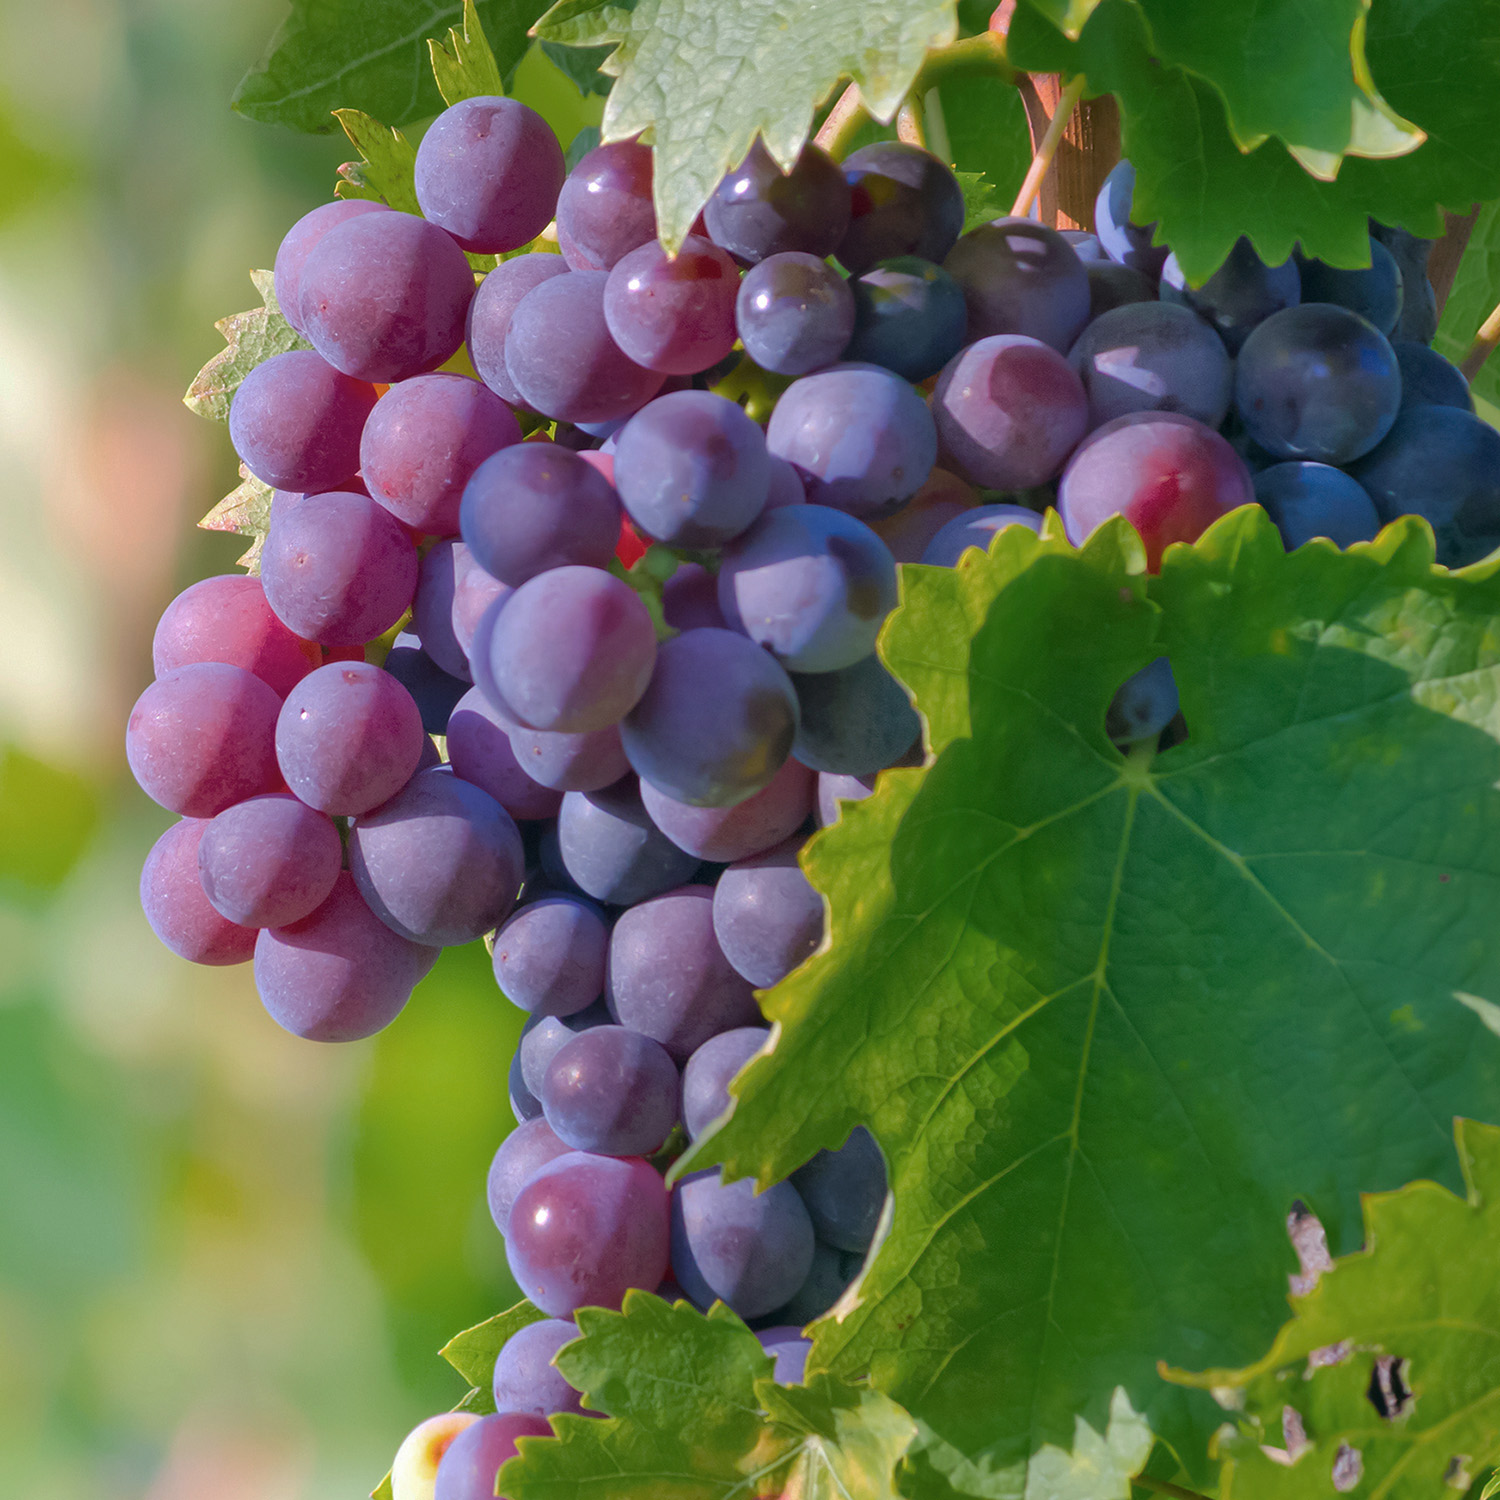 Grapes - Grape seed extract